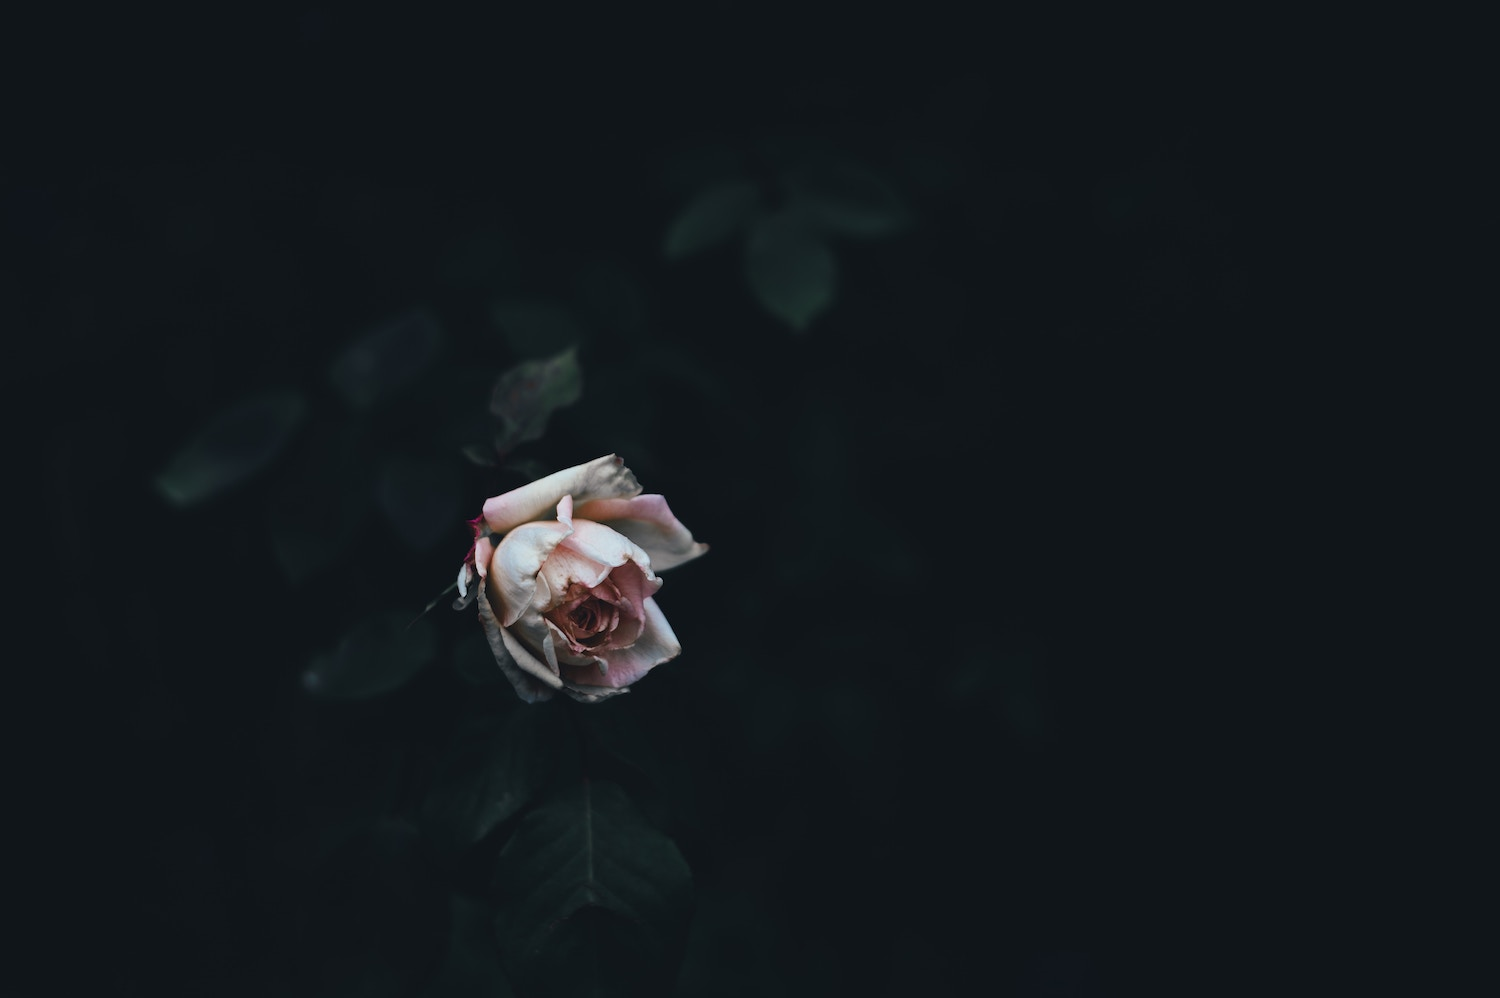 A photo of a blossoming flower in darkness by Annie Spratt